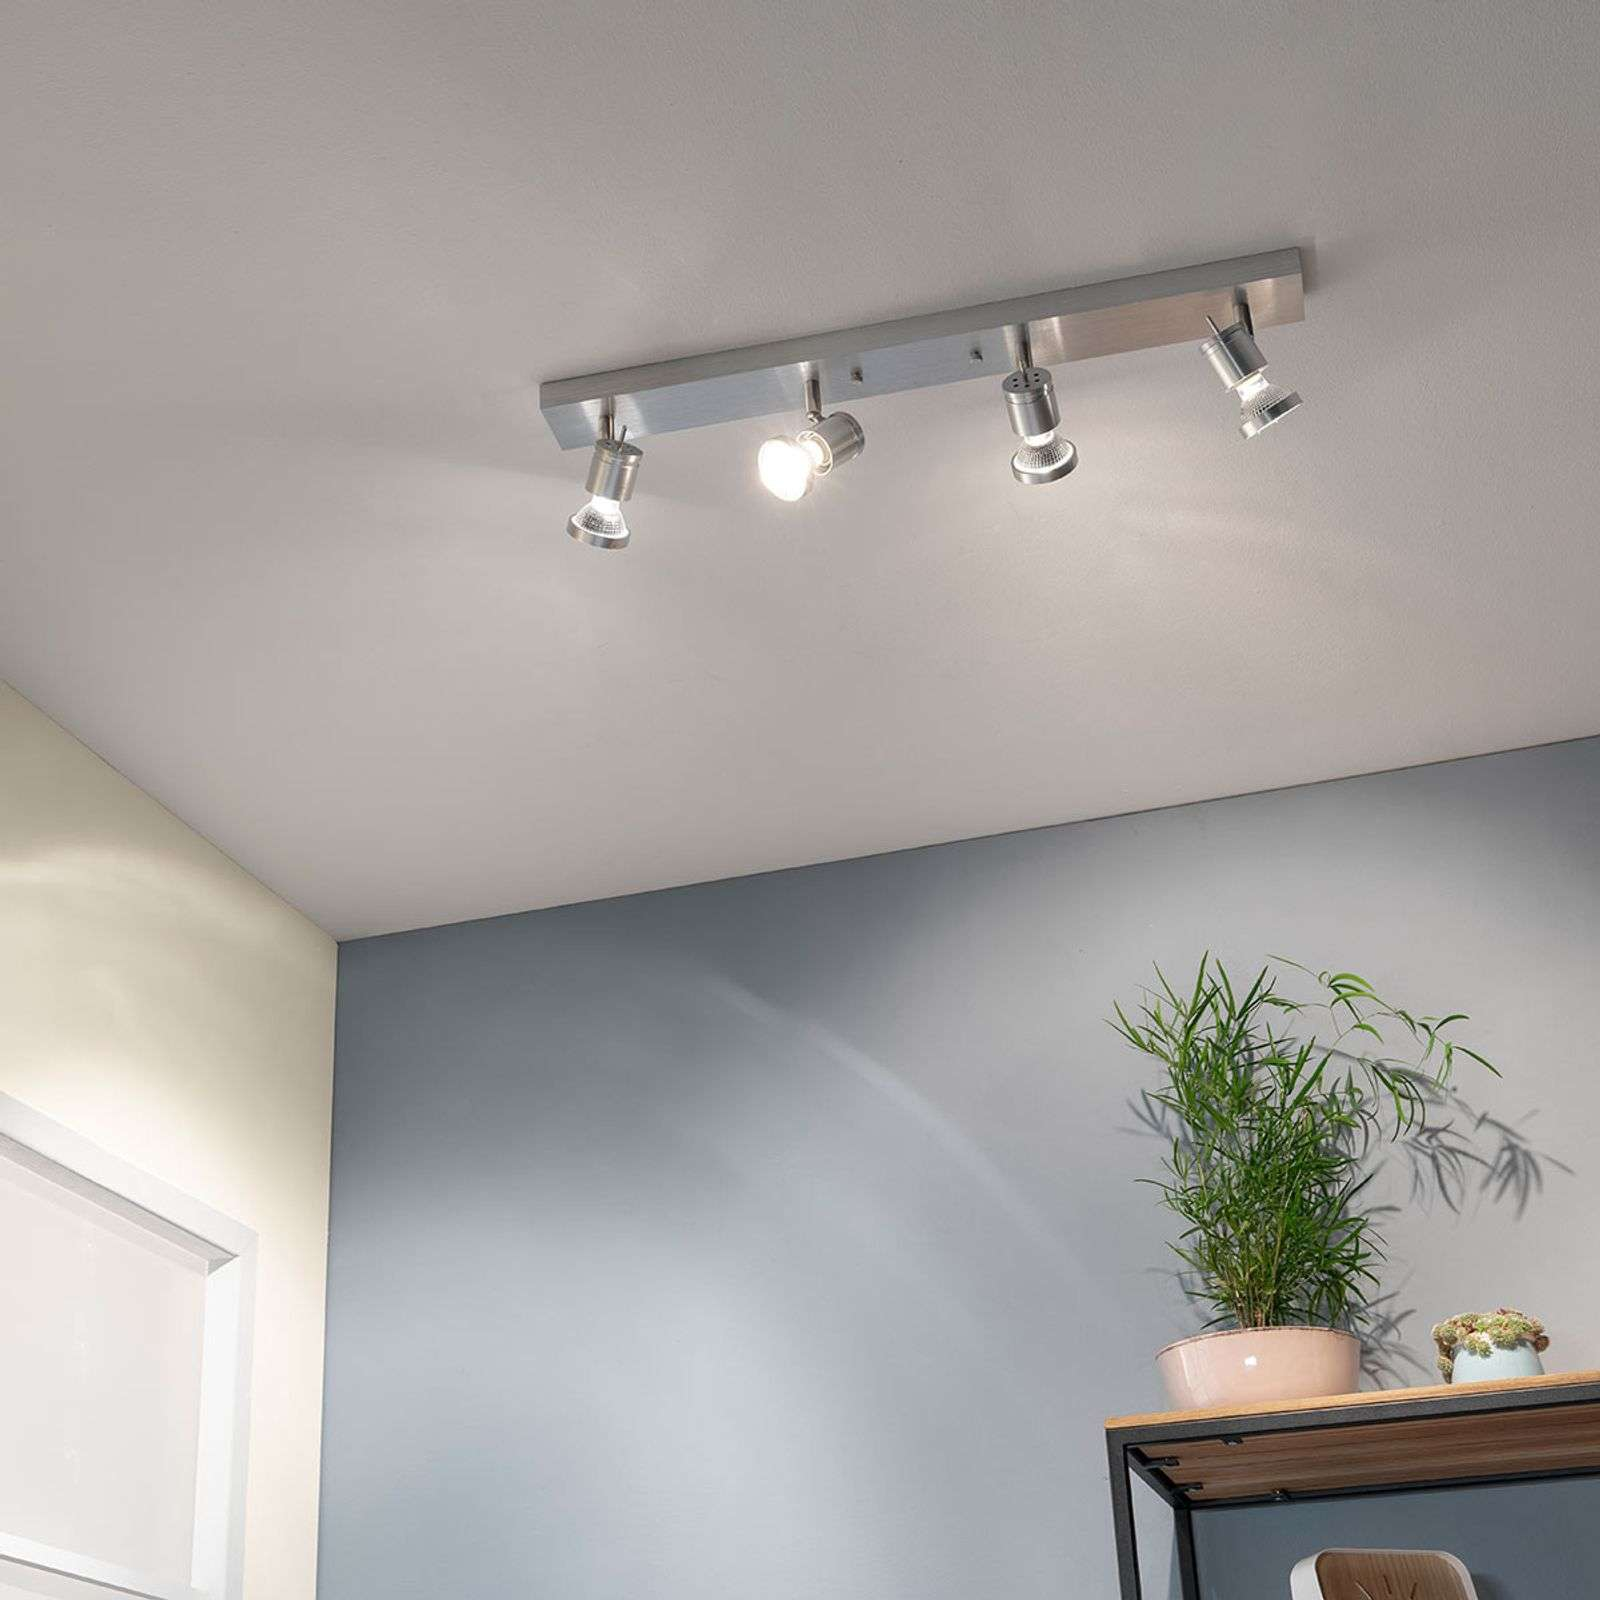 Spot da soffitto Asto a 4 luci con anello dec.